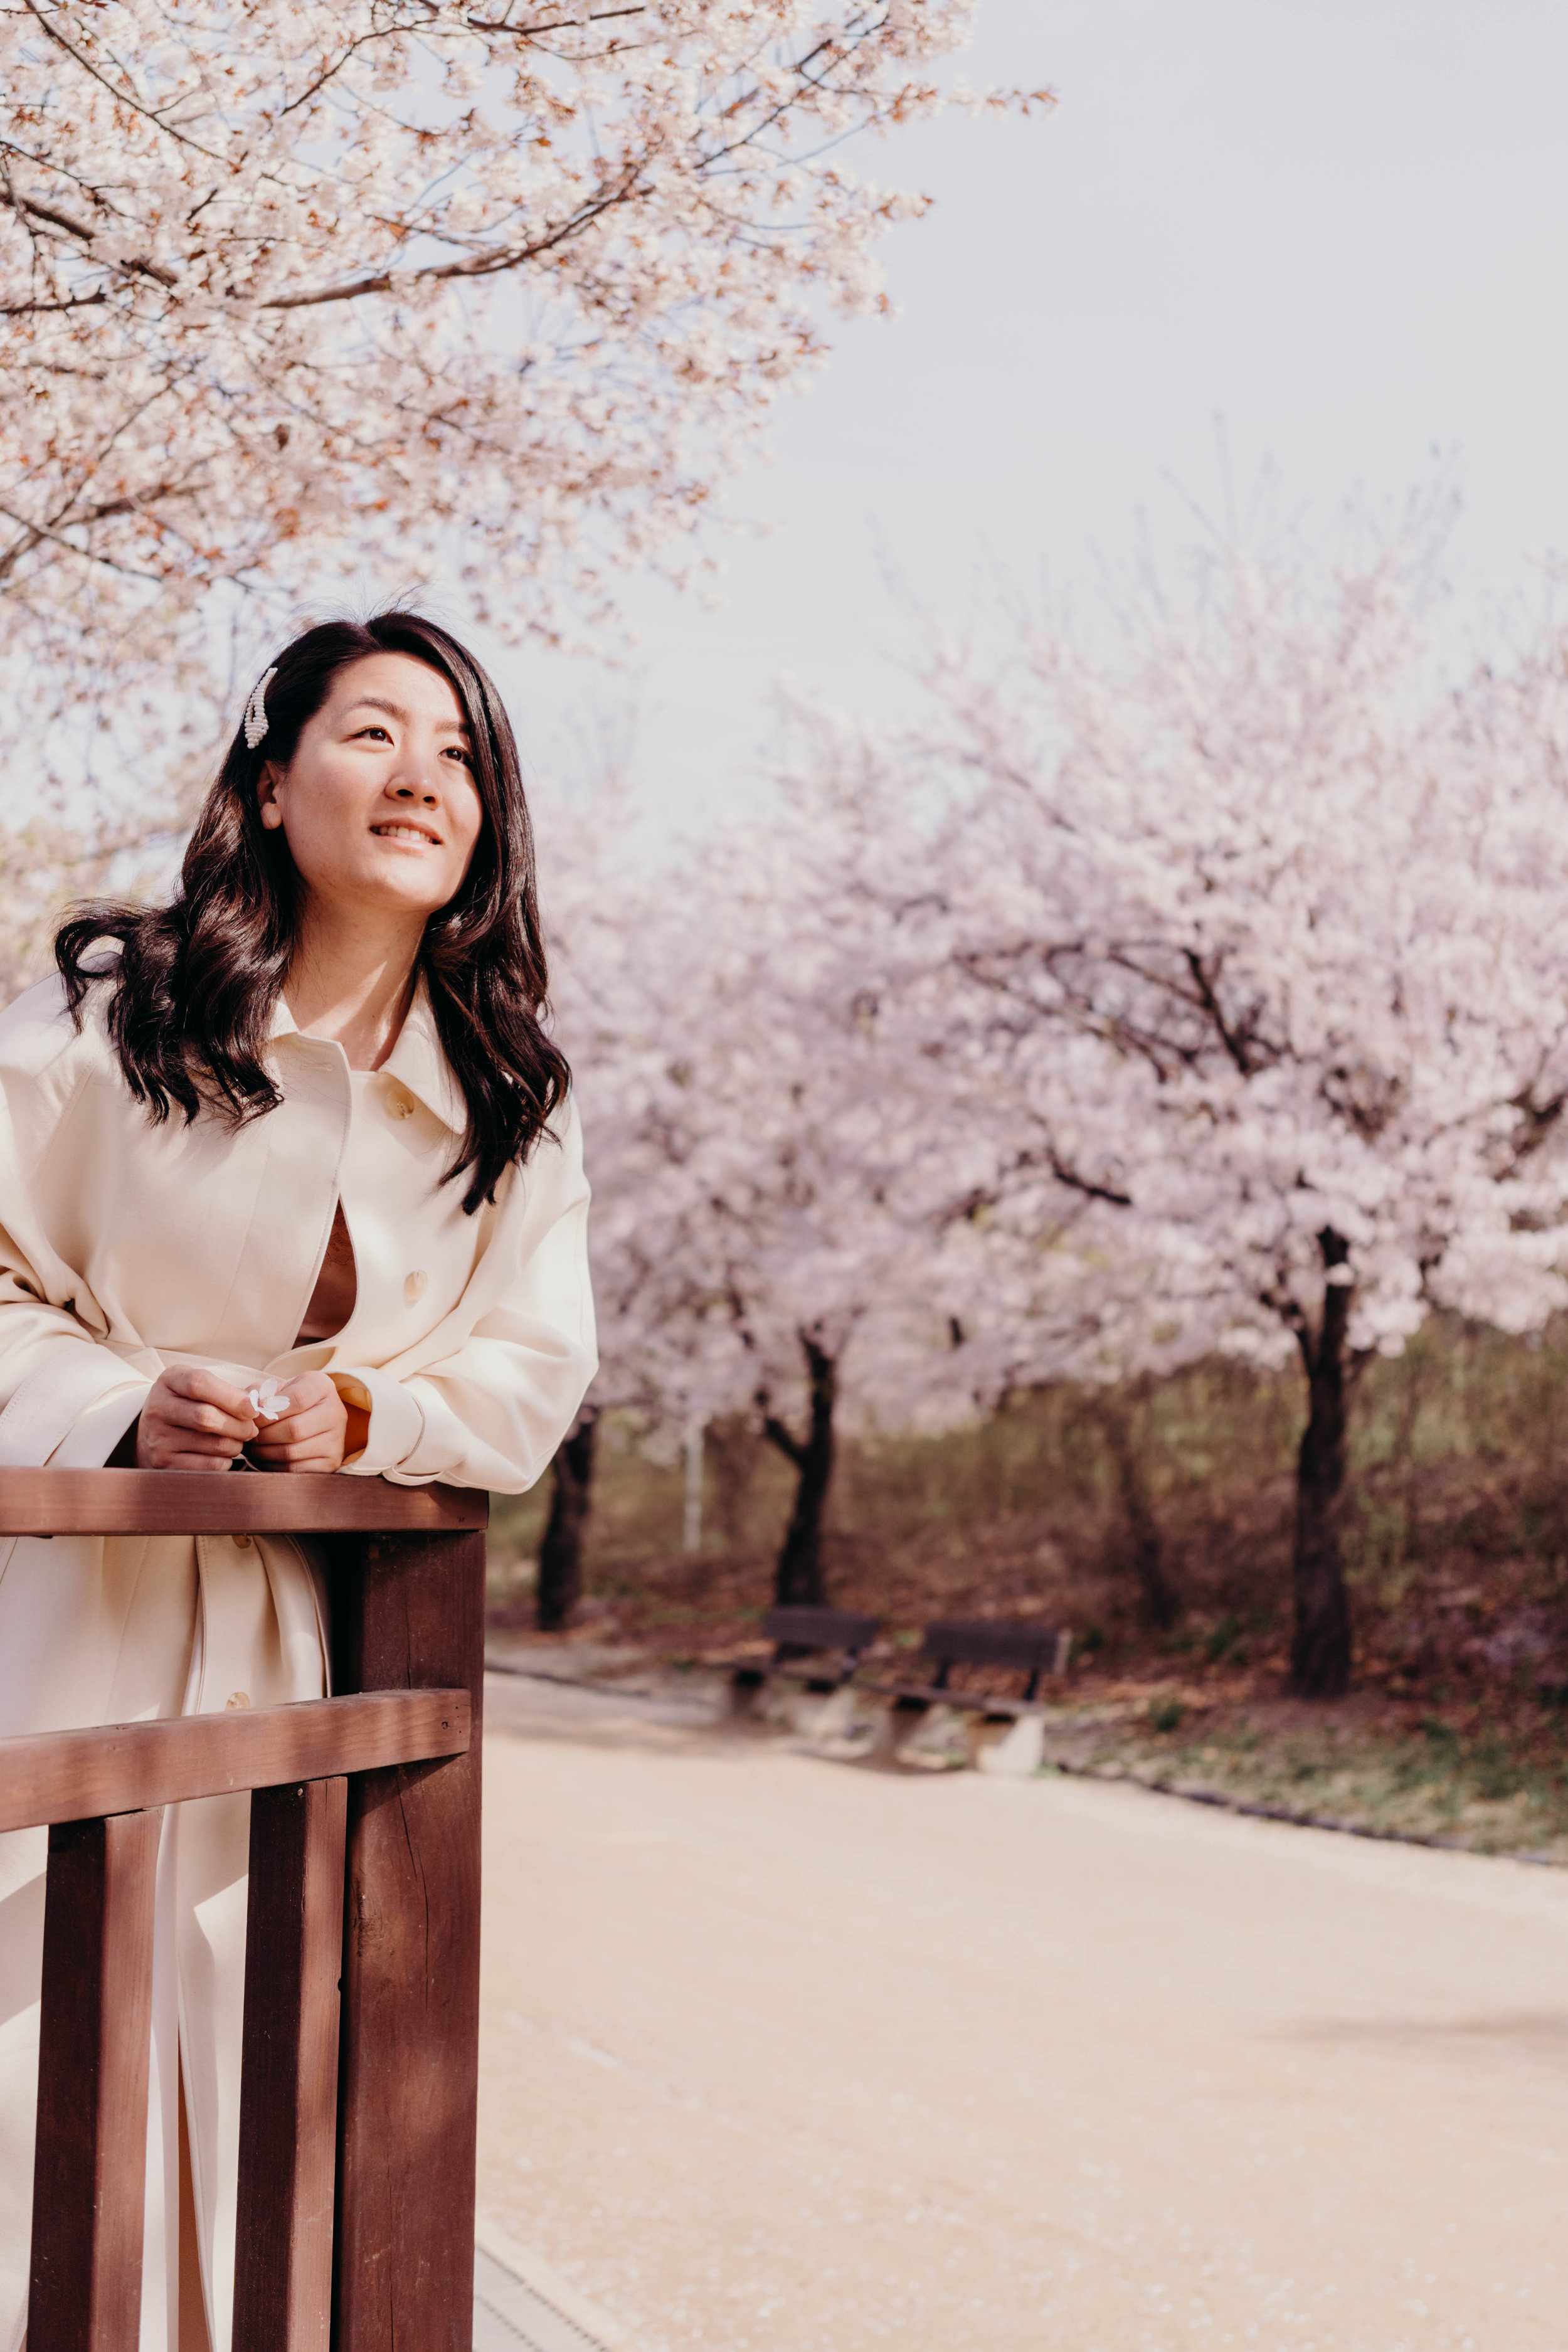 Living in Anticipation | On the Street Where We Live (aretherelilactrees.com)  cherry blossoms, sakura, Seoul, South Korea, trench coat, tidy coat